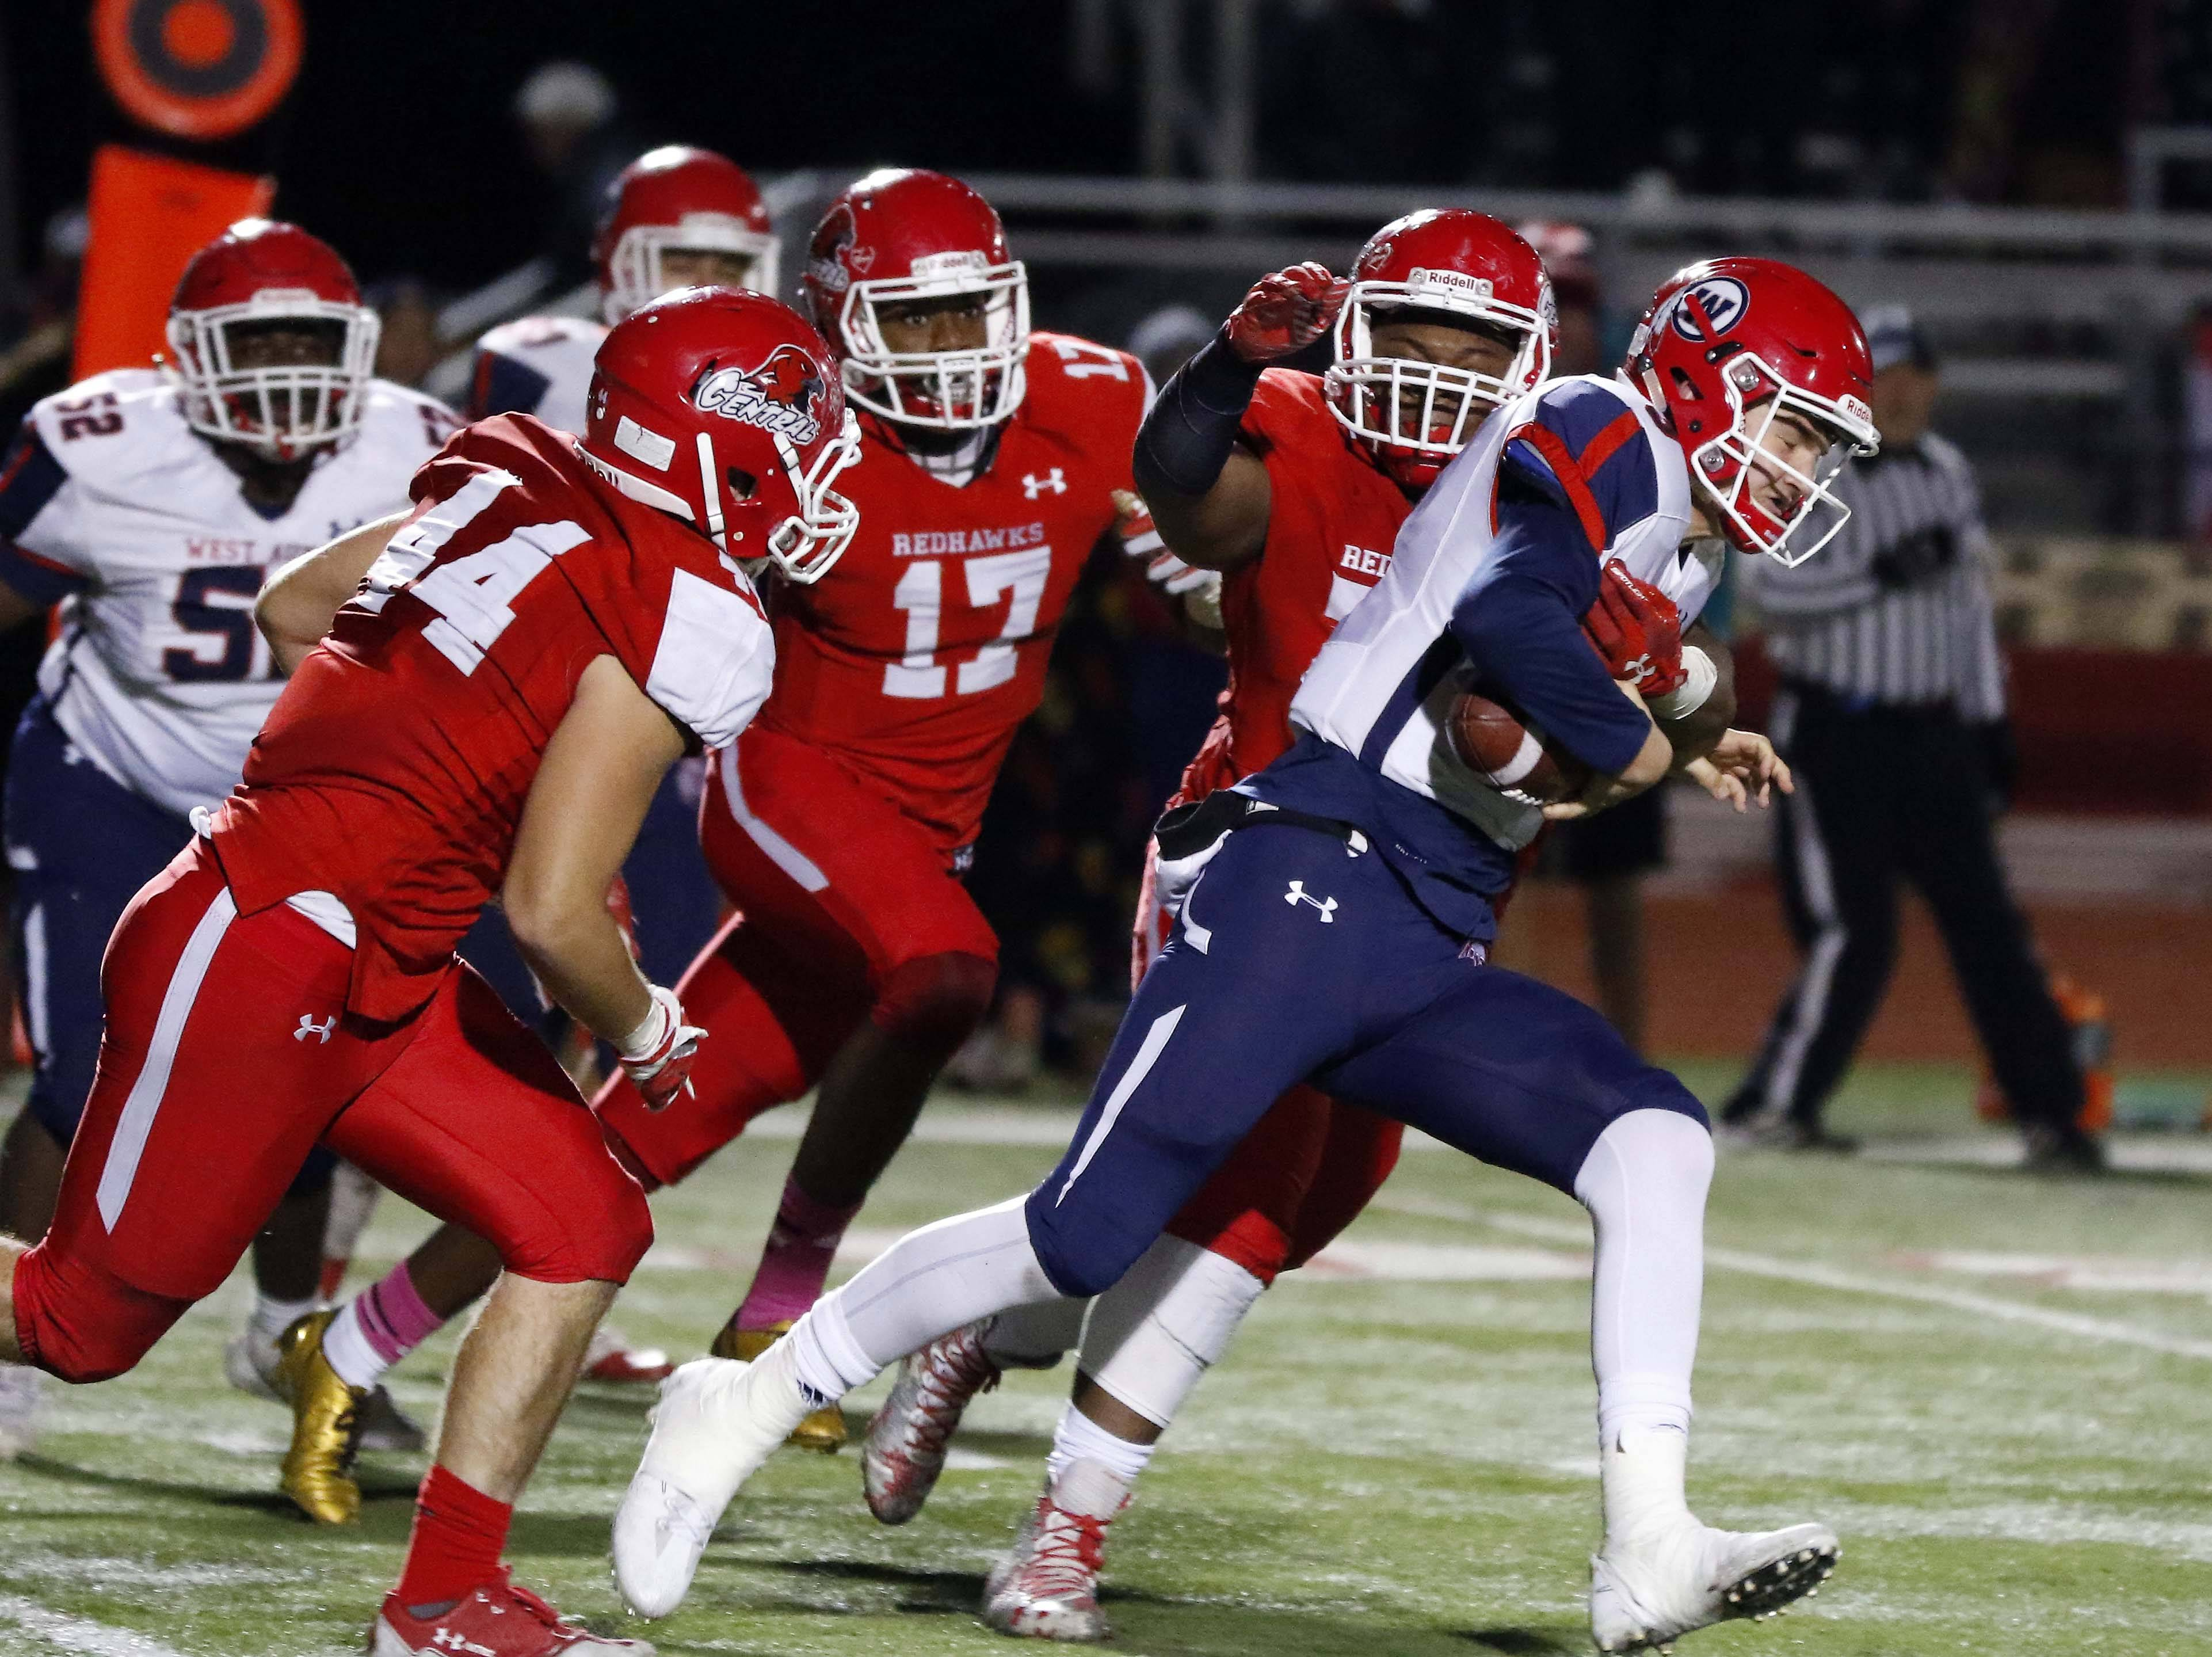 Photos from the West Aurora at Naperville Central Class 8A first round playoff football game on Friday, October 27, 2017.